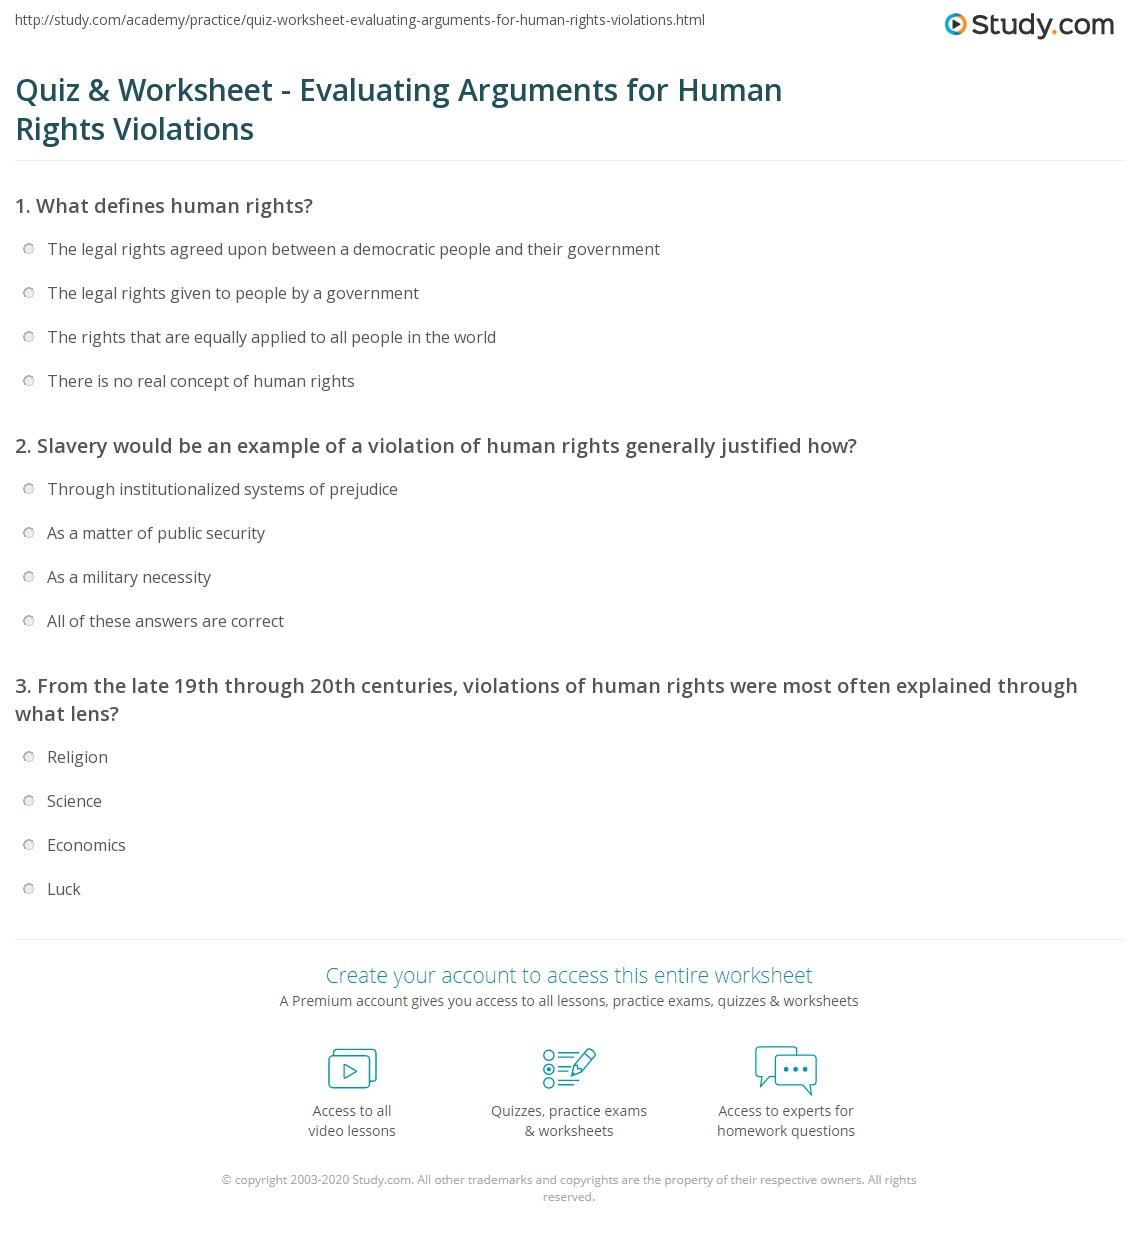 Quiz & Worksheet Evaluating Arguments for Human Rights